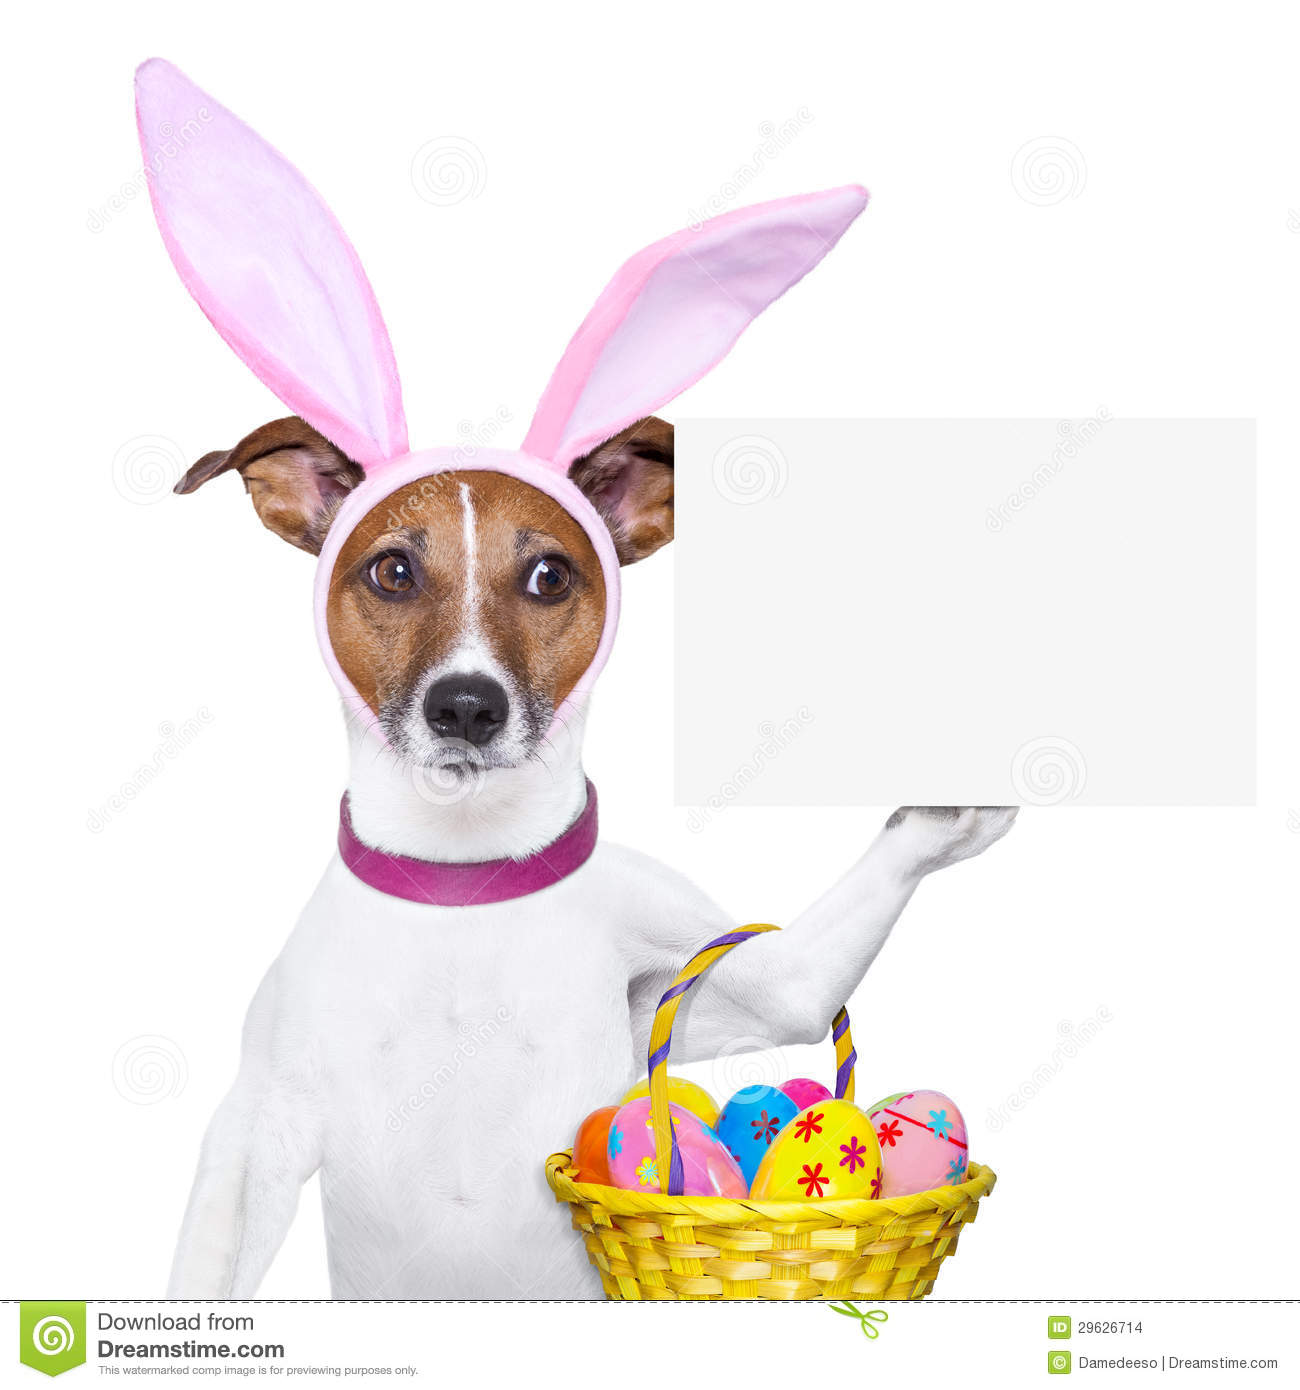 Funny easter dog stock photo. Image of animal, banner ...